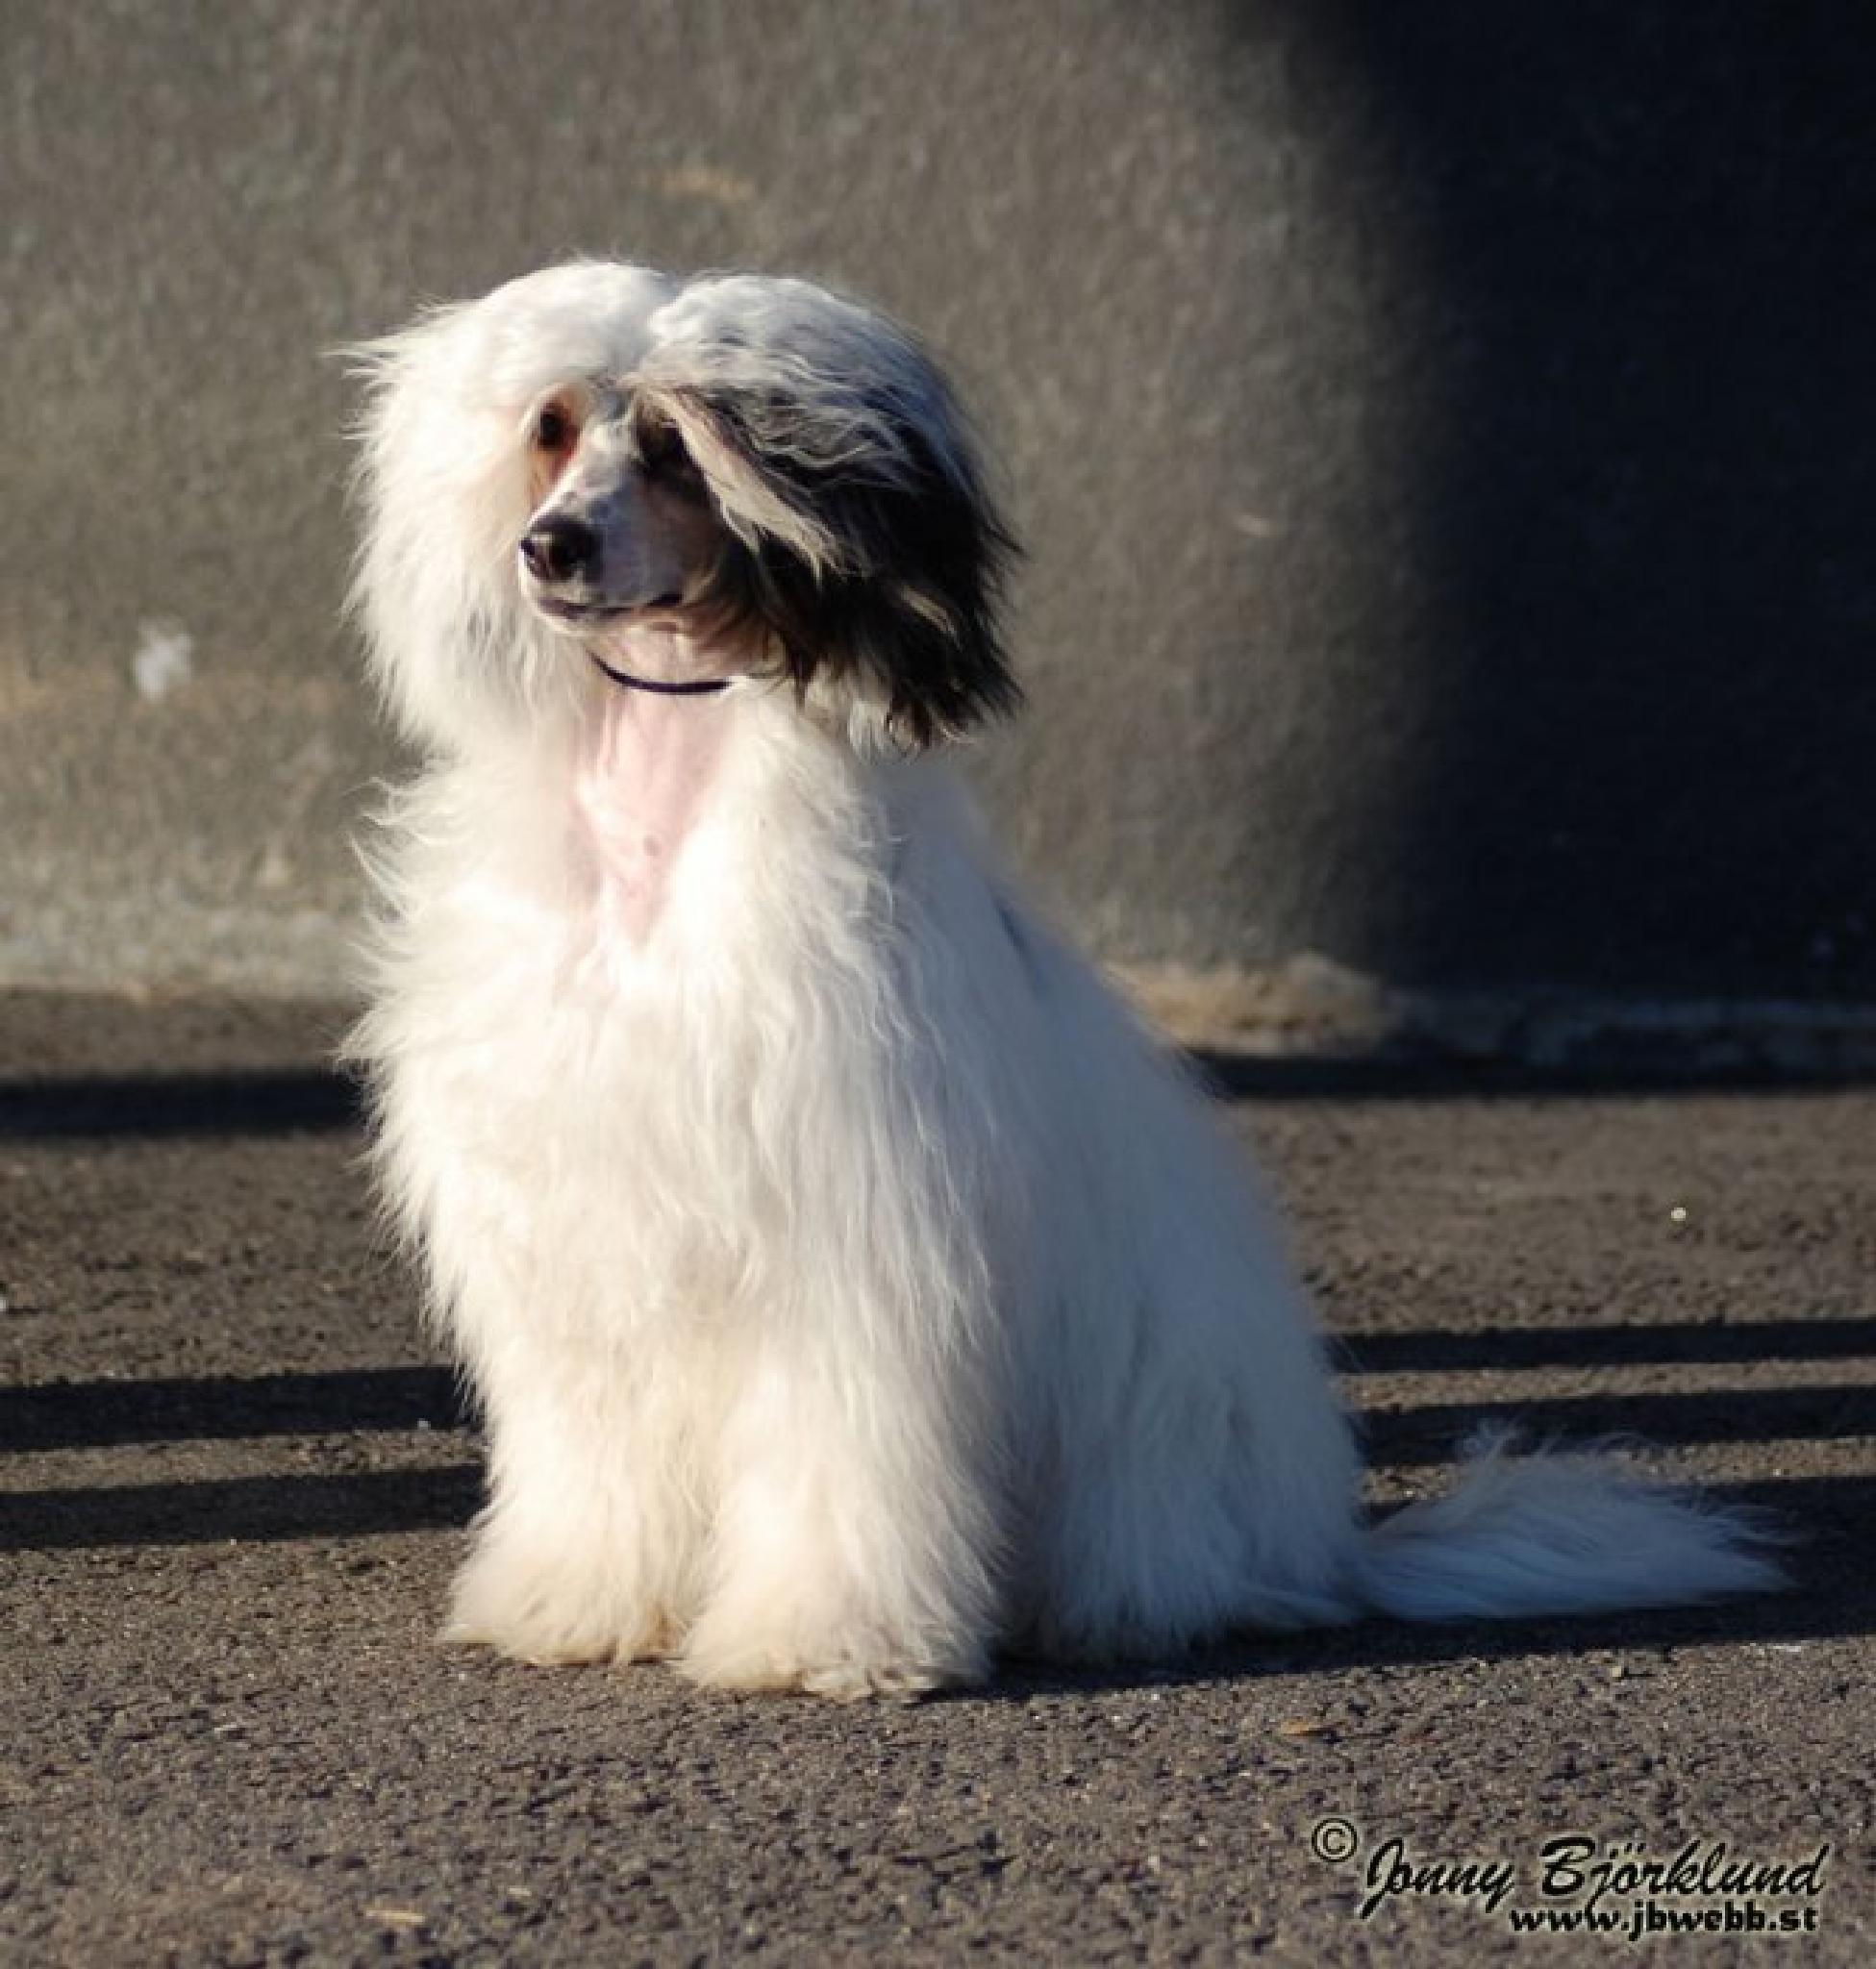 Chinese Crested Dog PowderPuff by Jonny Björklund